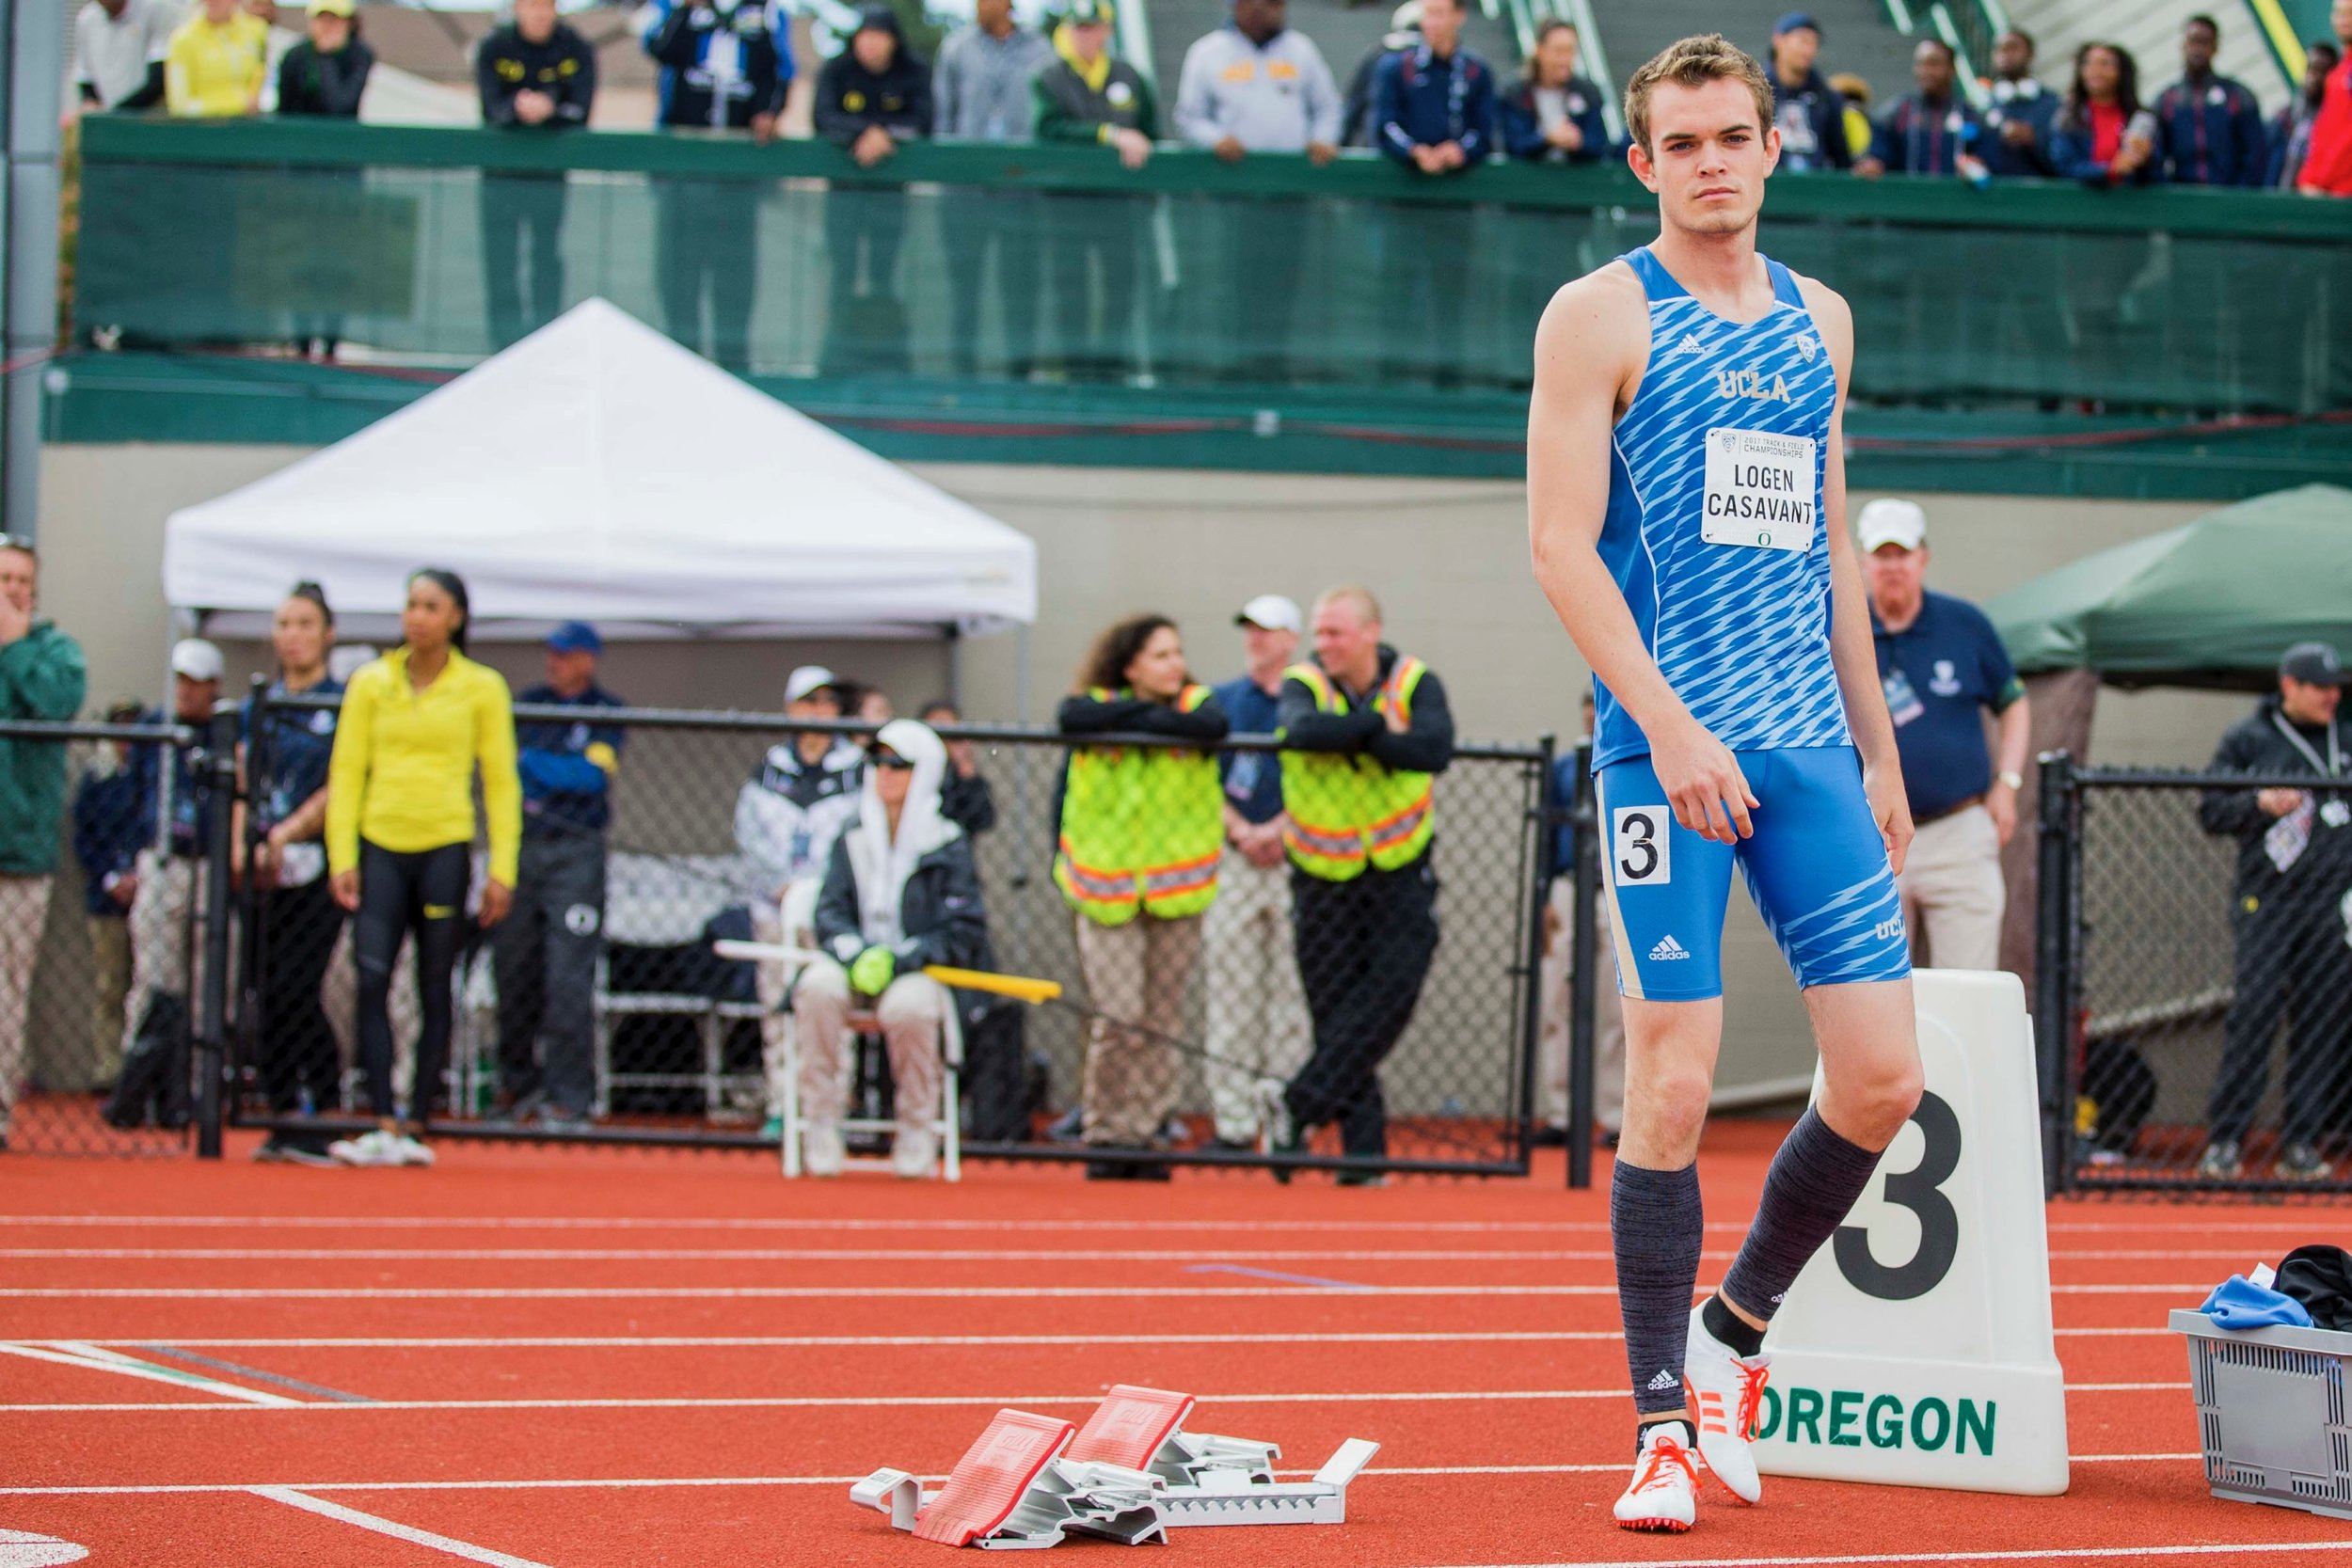 Brother Logen Casavant, UCLA Track